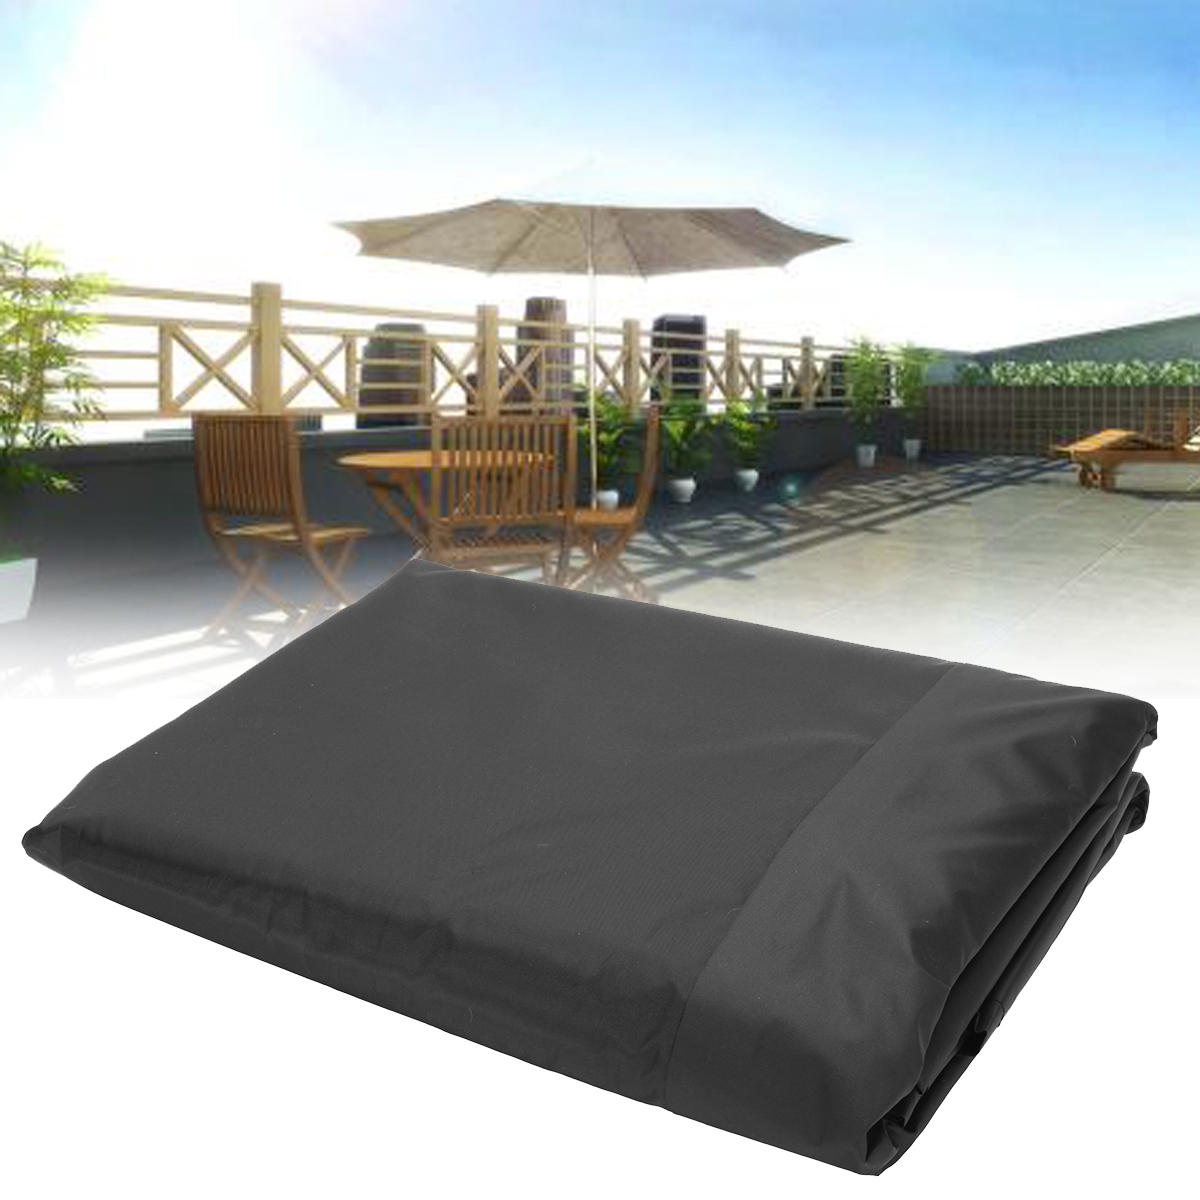 236 2x275 6inch Polyester Shelter Outdoor Waterproof Shade Sail Sun